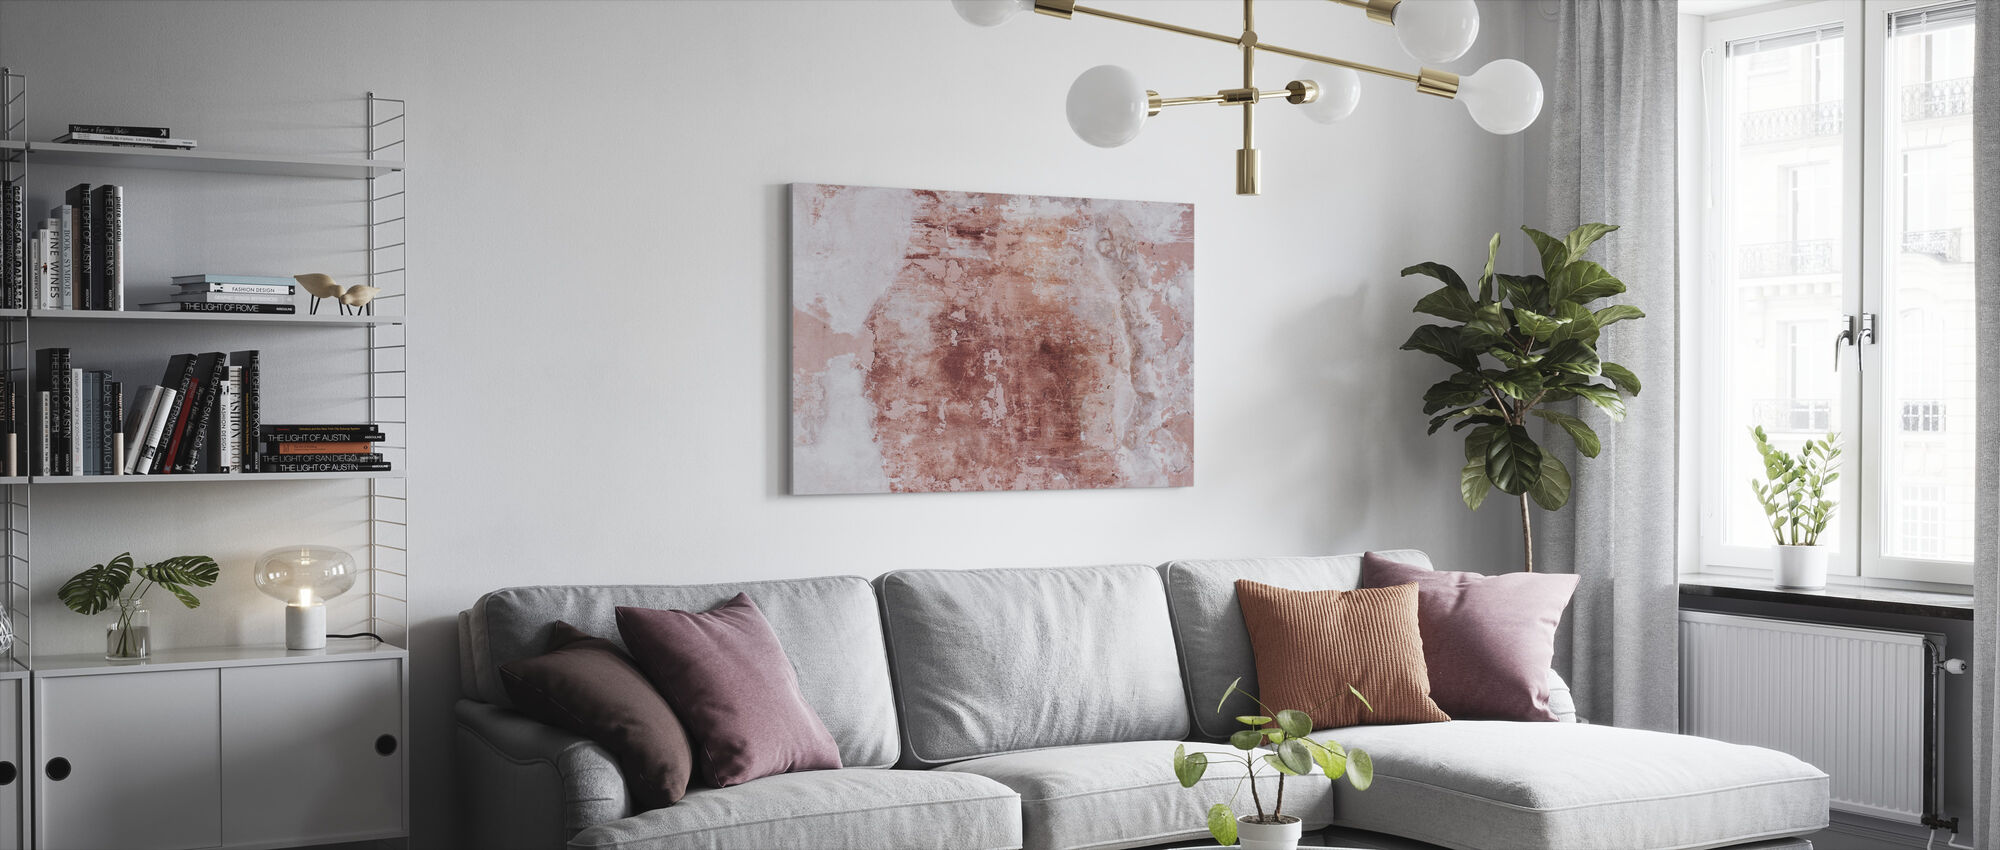 Worn Out Wall - Canvas print - Living Room